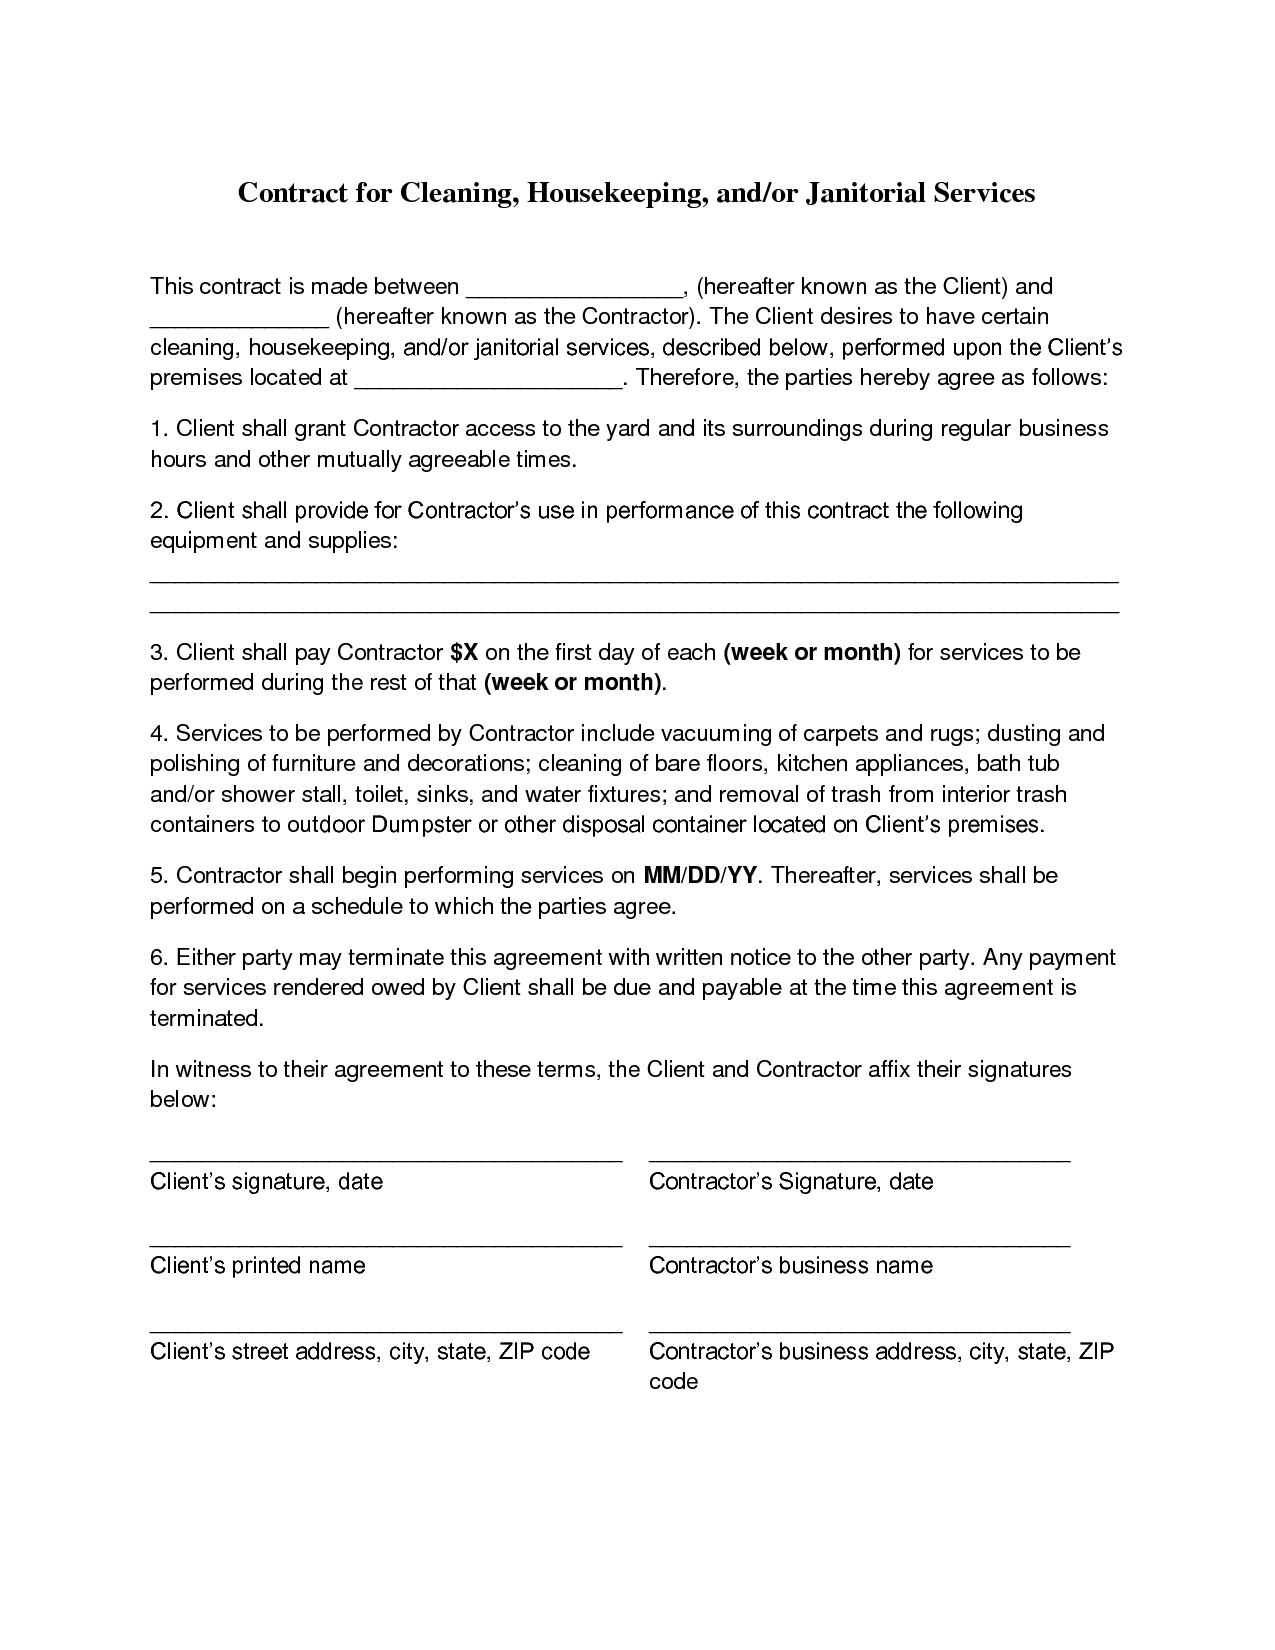 Exelent Contract Agreement Templates Gallery Documentation  Free - Free Printable Service Contract Forms